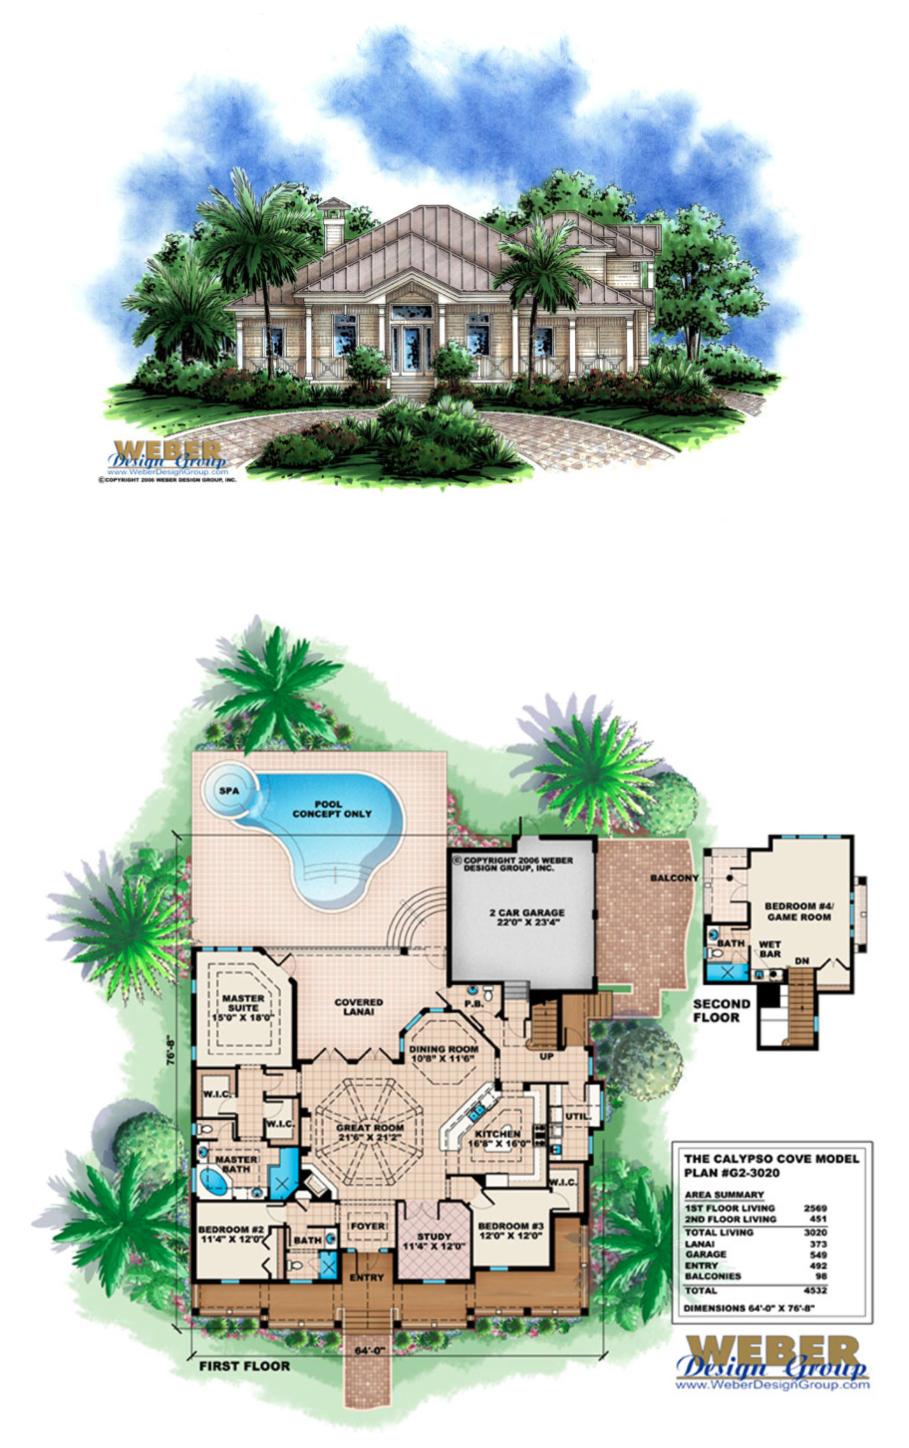 Beach House Plan Old Florida Style Open Layout Covered Lanai Pool Beach House Plans Beach House Plan House Plans